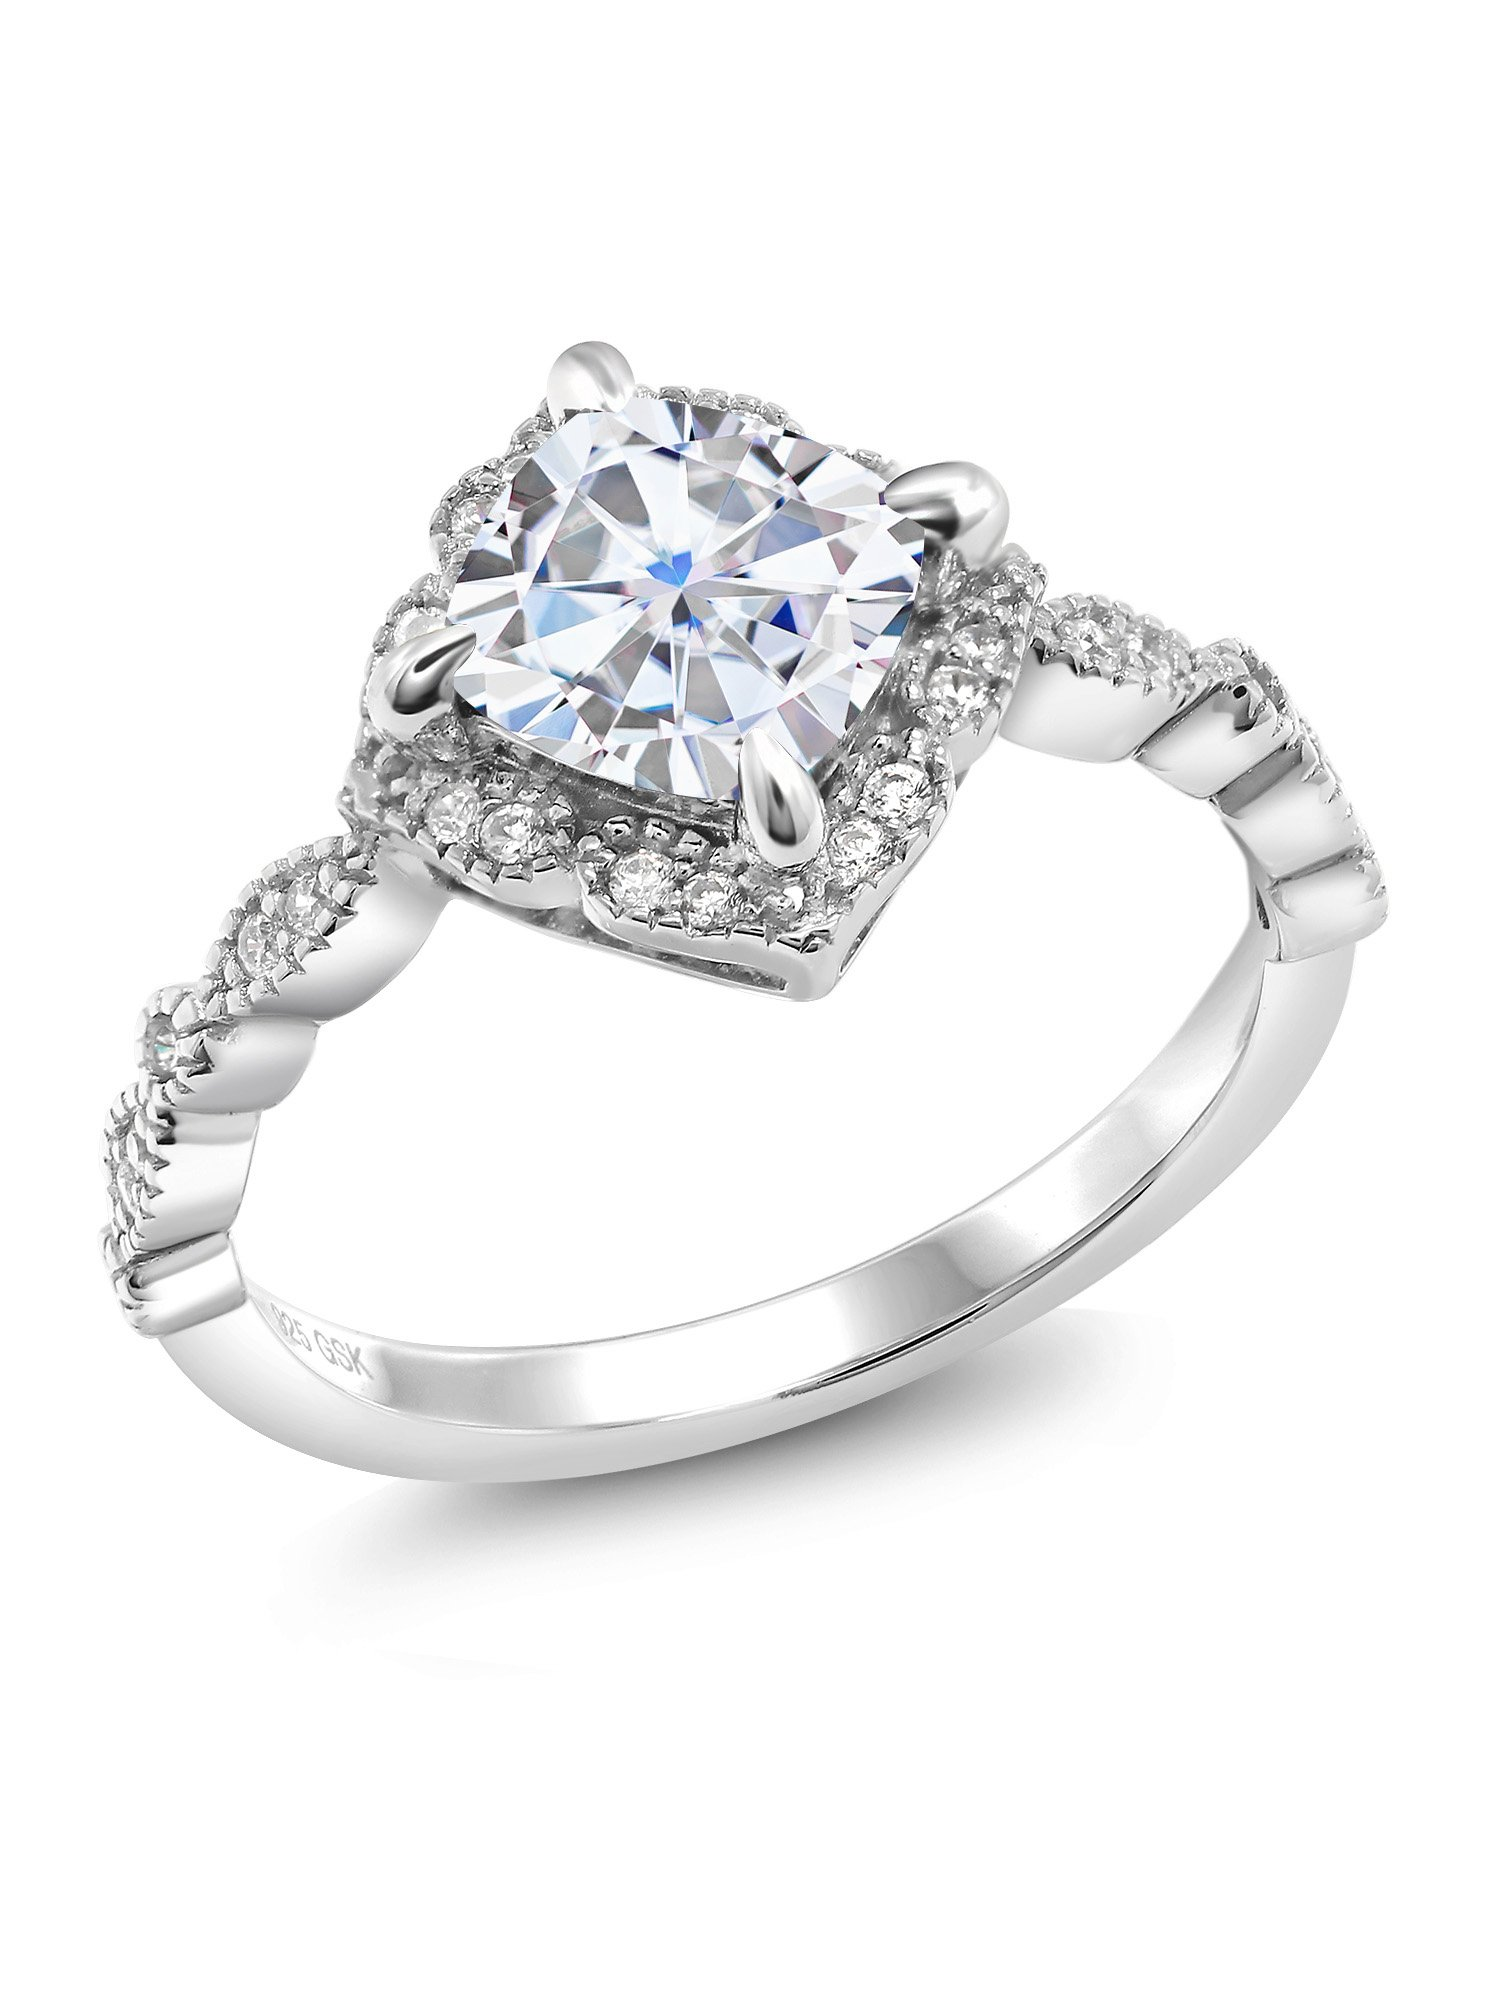 925 Platinum Plated Sterling Silver Fashion Right-Hand Ring Timeless Brilliant Cushion (IJK) 1.70ct (DEW) Created Moissanite